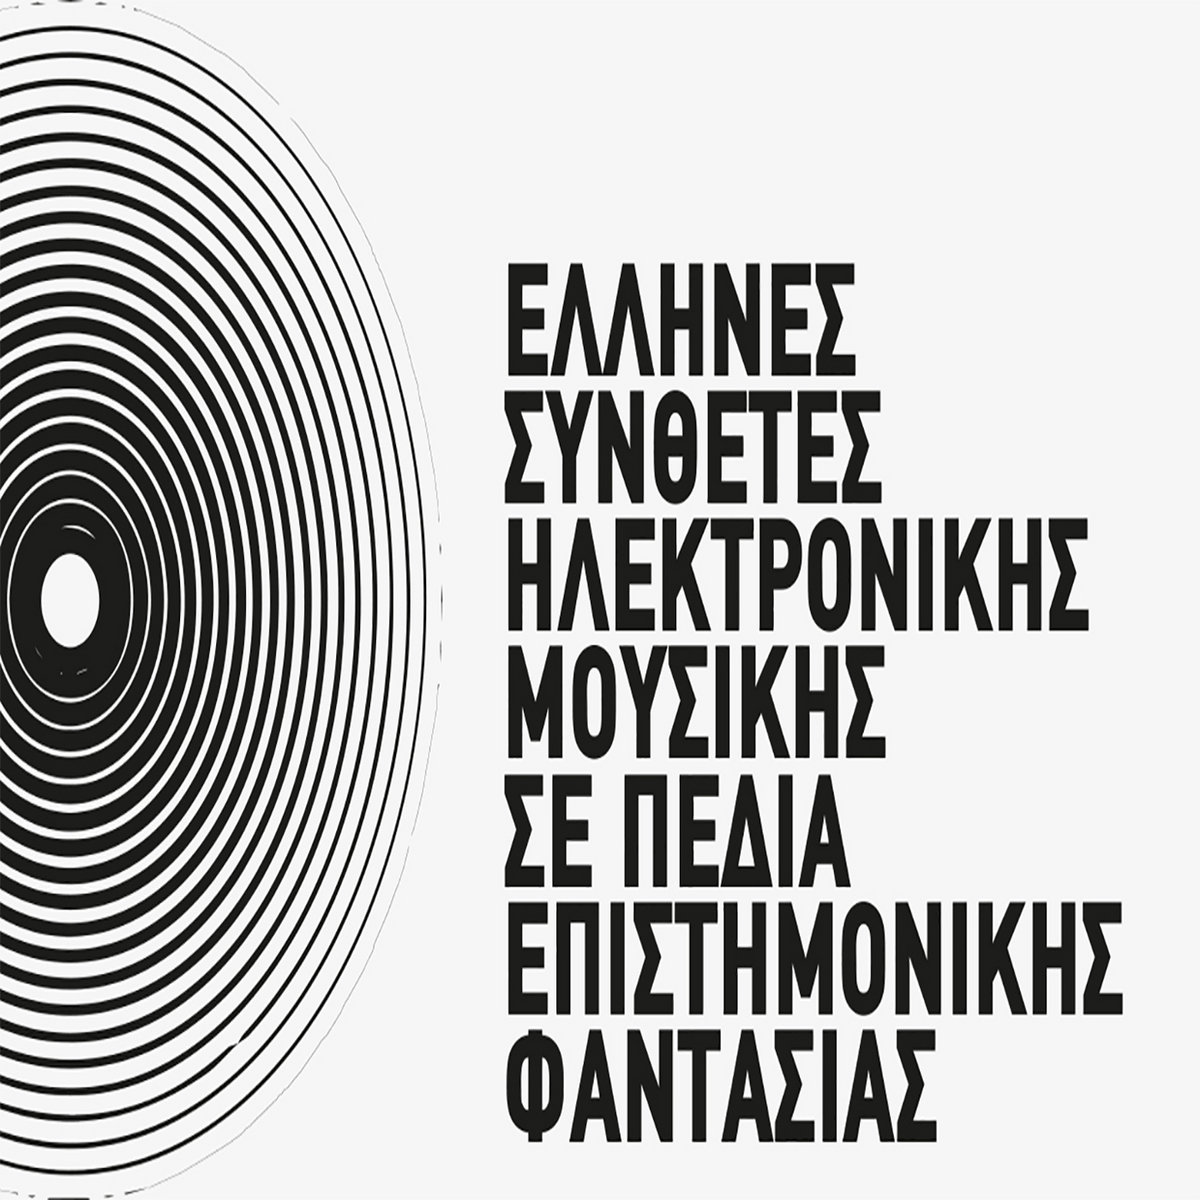 Greek Composers Of Electronic Music In SciFi Soundscapes